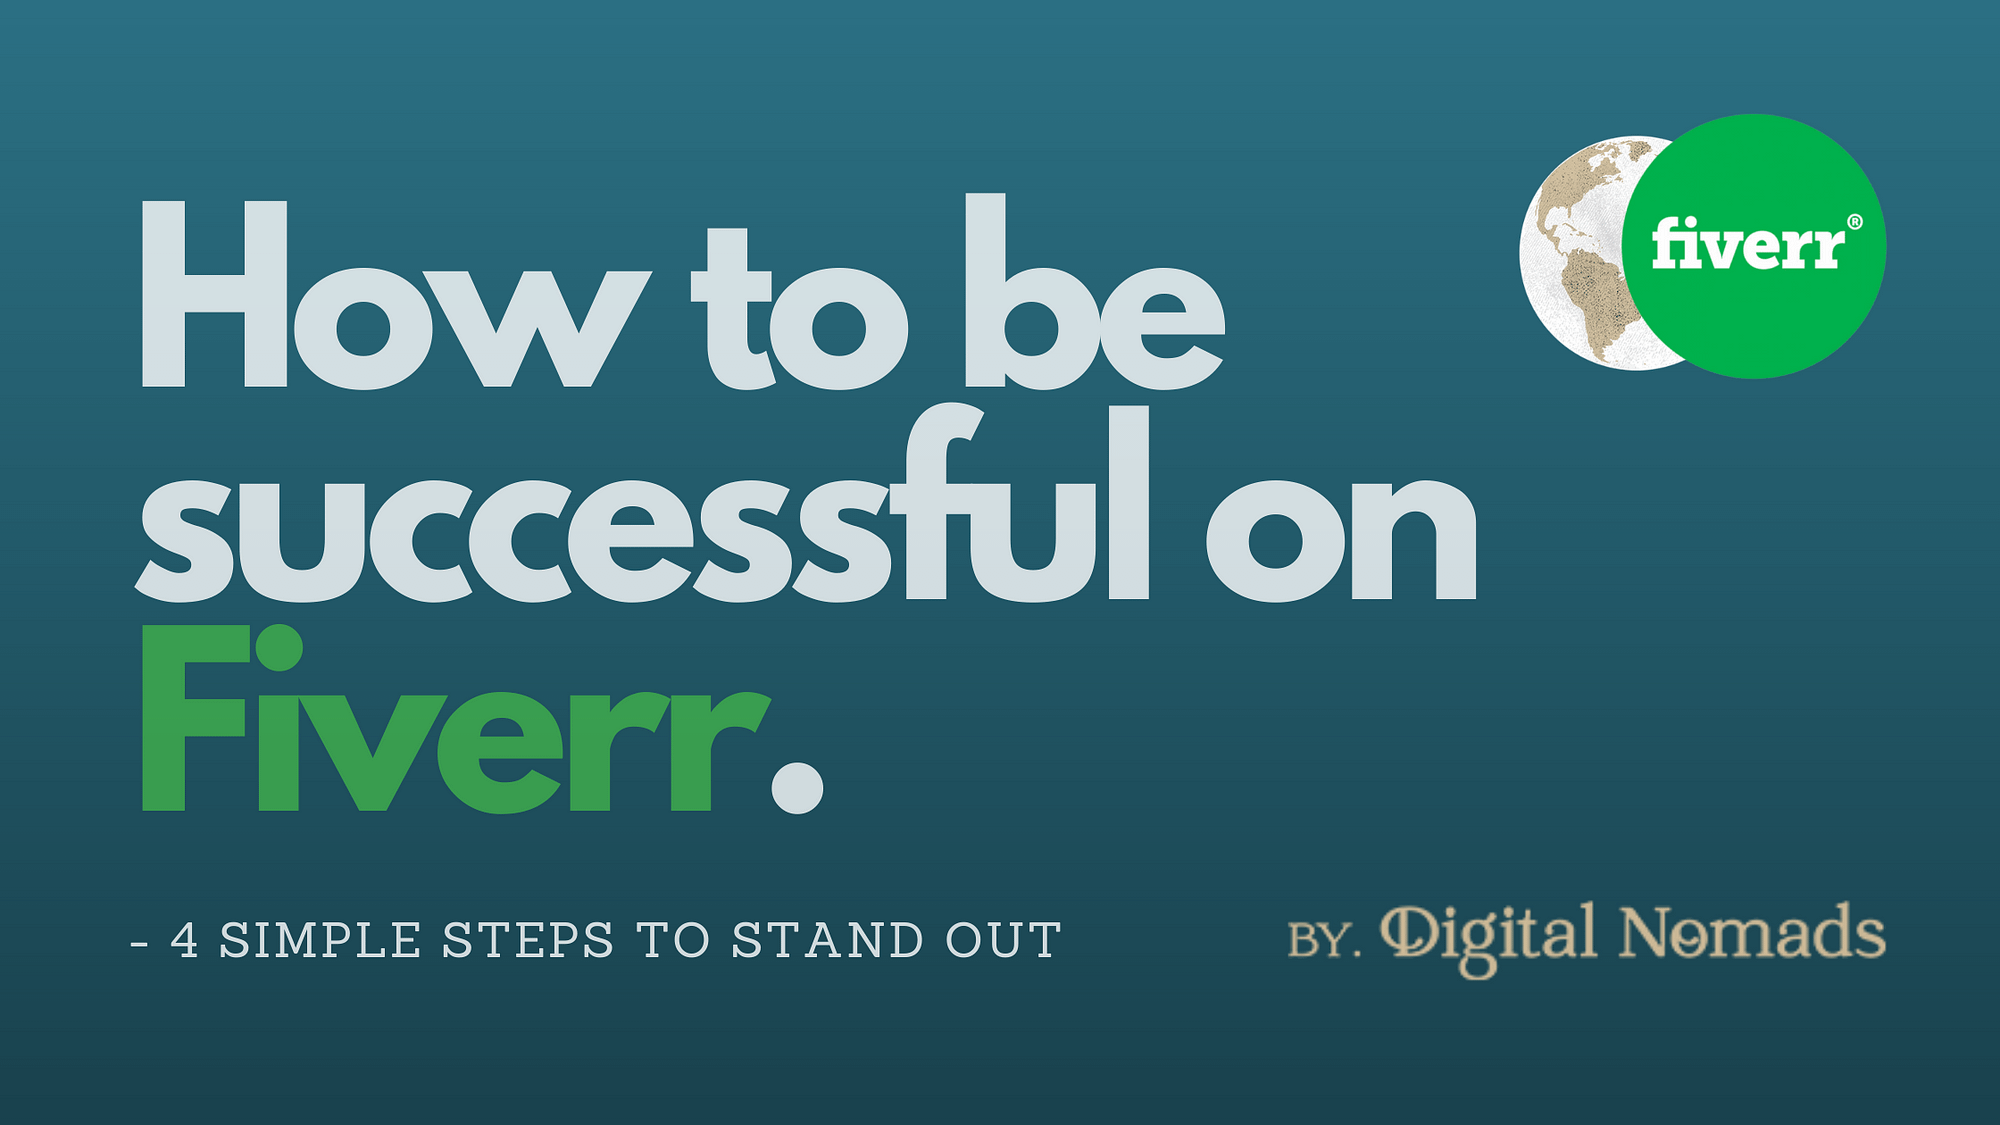 How To Be Successful on Fiverr - 4 steps to stand out on Fiverr